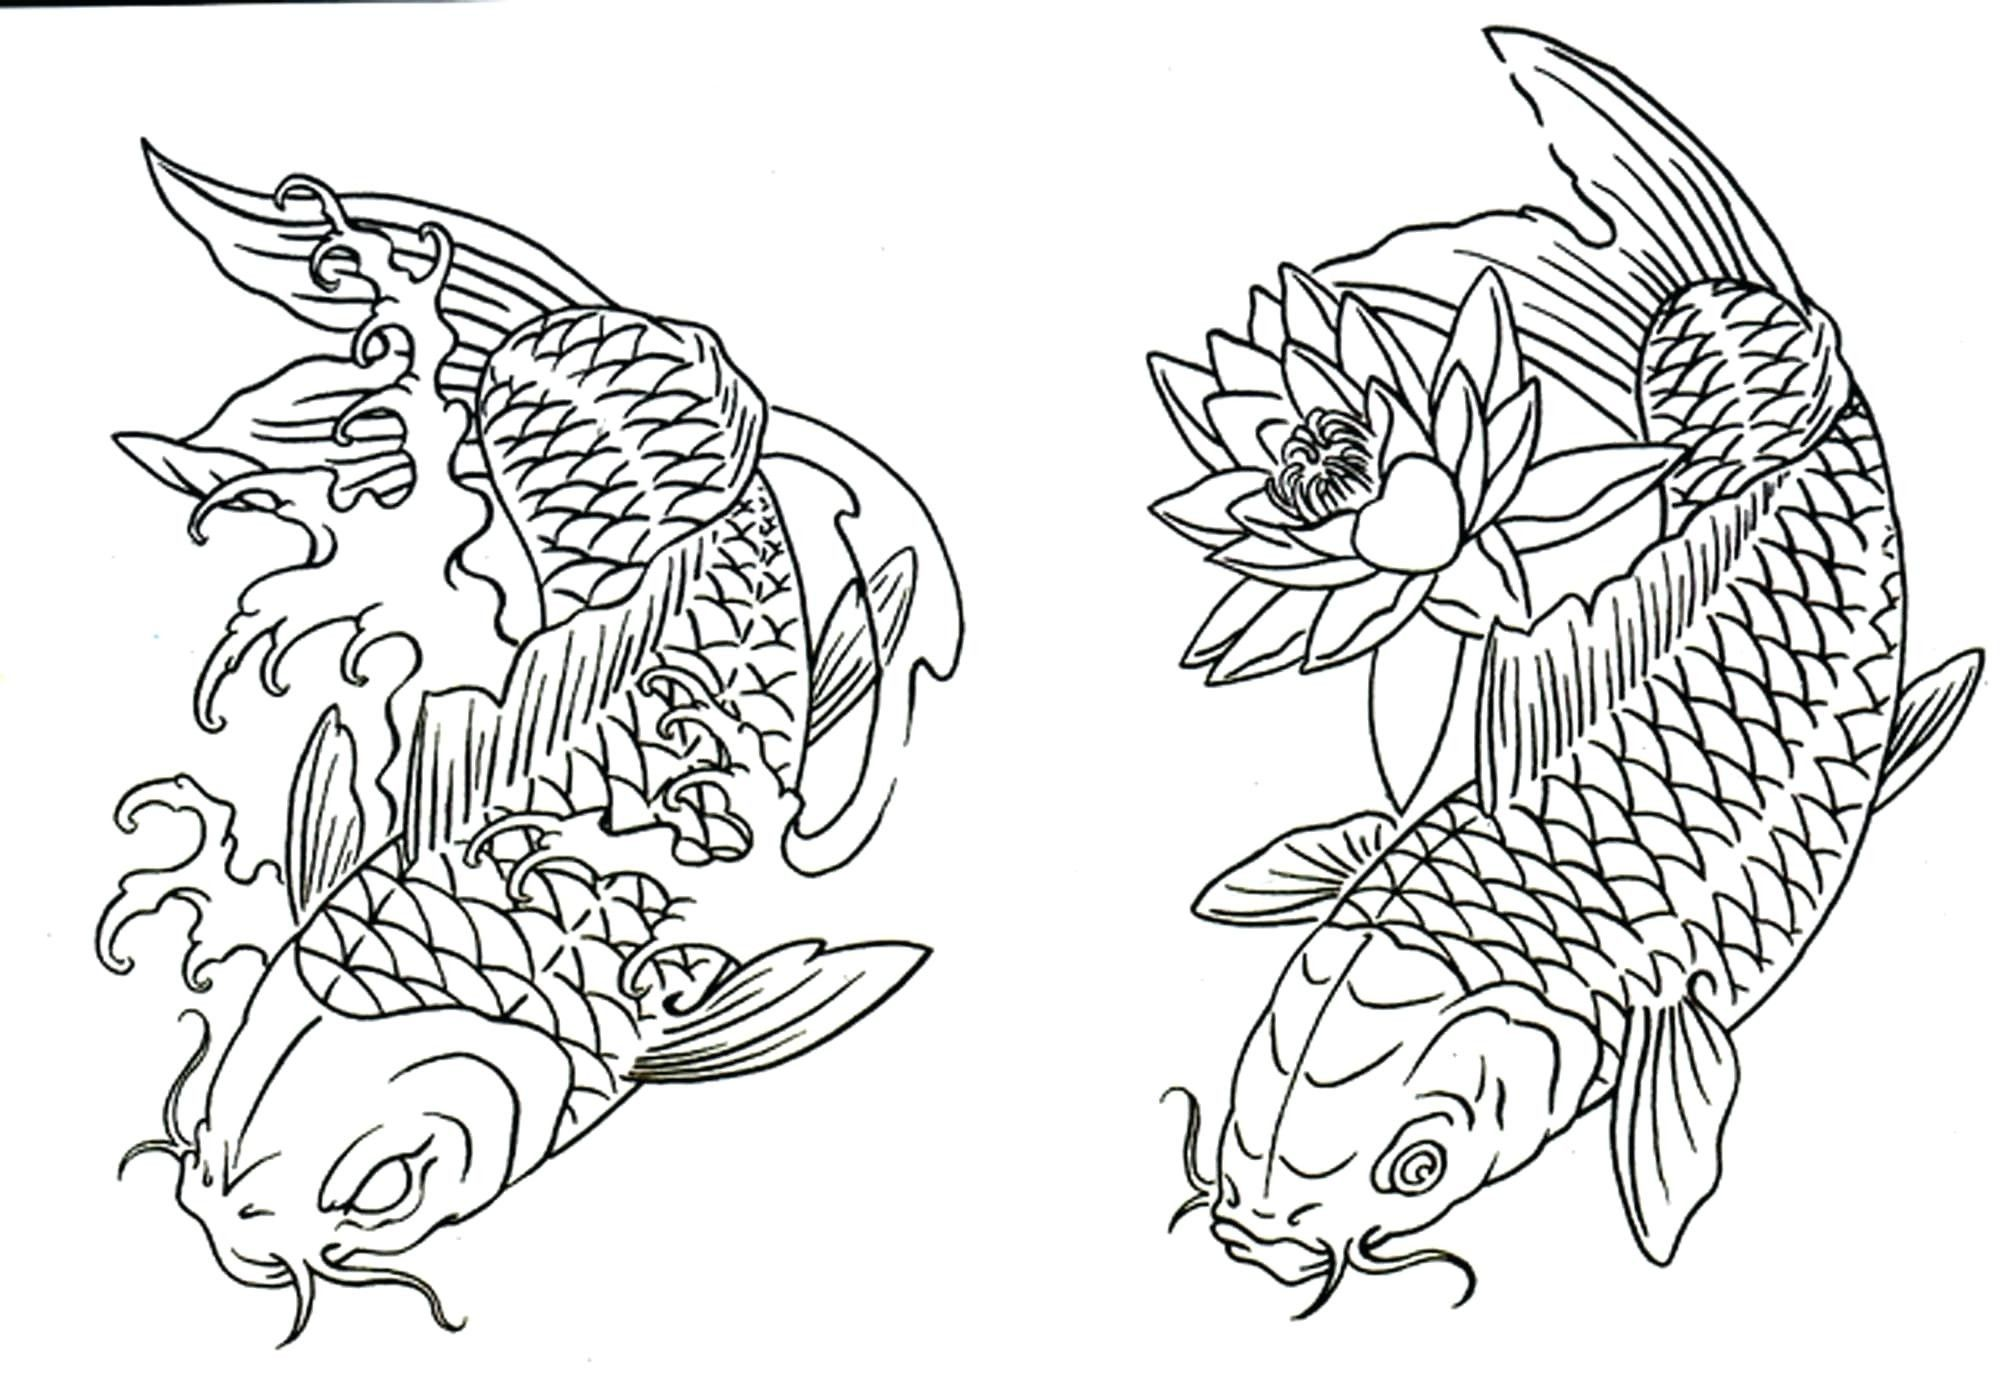 Cute Fish Coloring Pages For Kids From The Finding Nemo Movie Free Coloring Sheets Fish Coloring Page Koi Fish Drawing Fish Outline